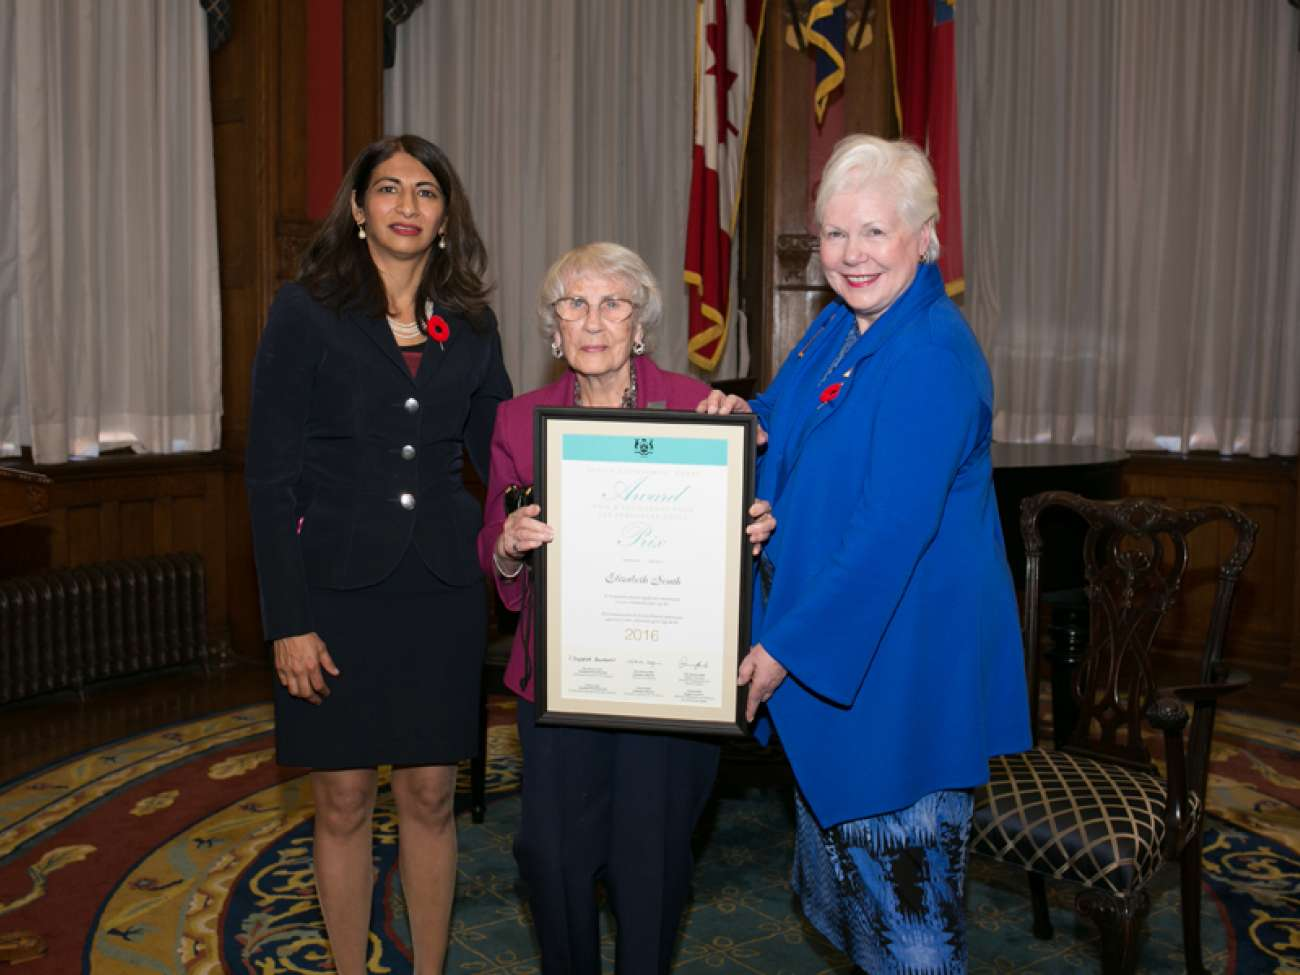 Betty South receives her award from the Hon. Dipika Damerla, Minister Responsible for Seniors Affairs (left) and the Hon. Elizabeth Dowdeswell, Lieutenant Governor of Ontario (right). Photo courtesy of the Government of Ontario.